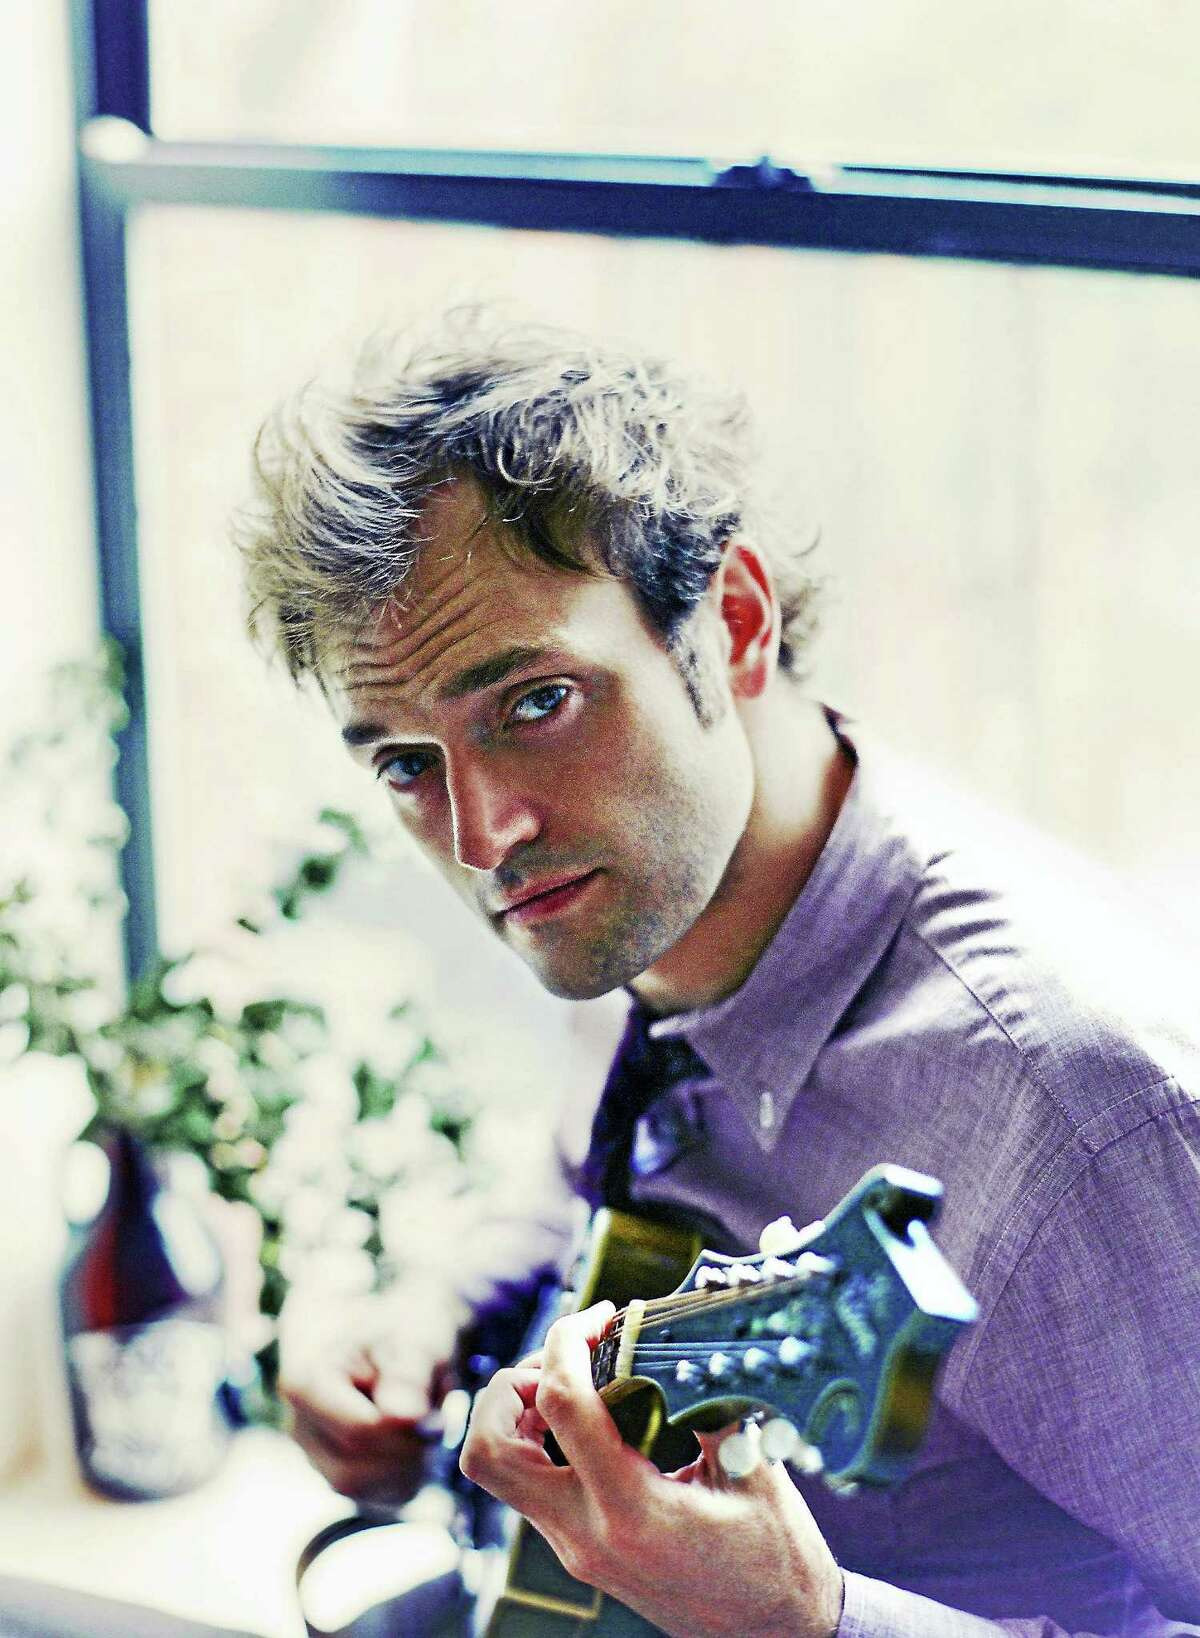 Contributed photoChris Thile joins Bela Fleck at Ives Concert Park for a concert in September.